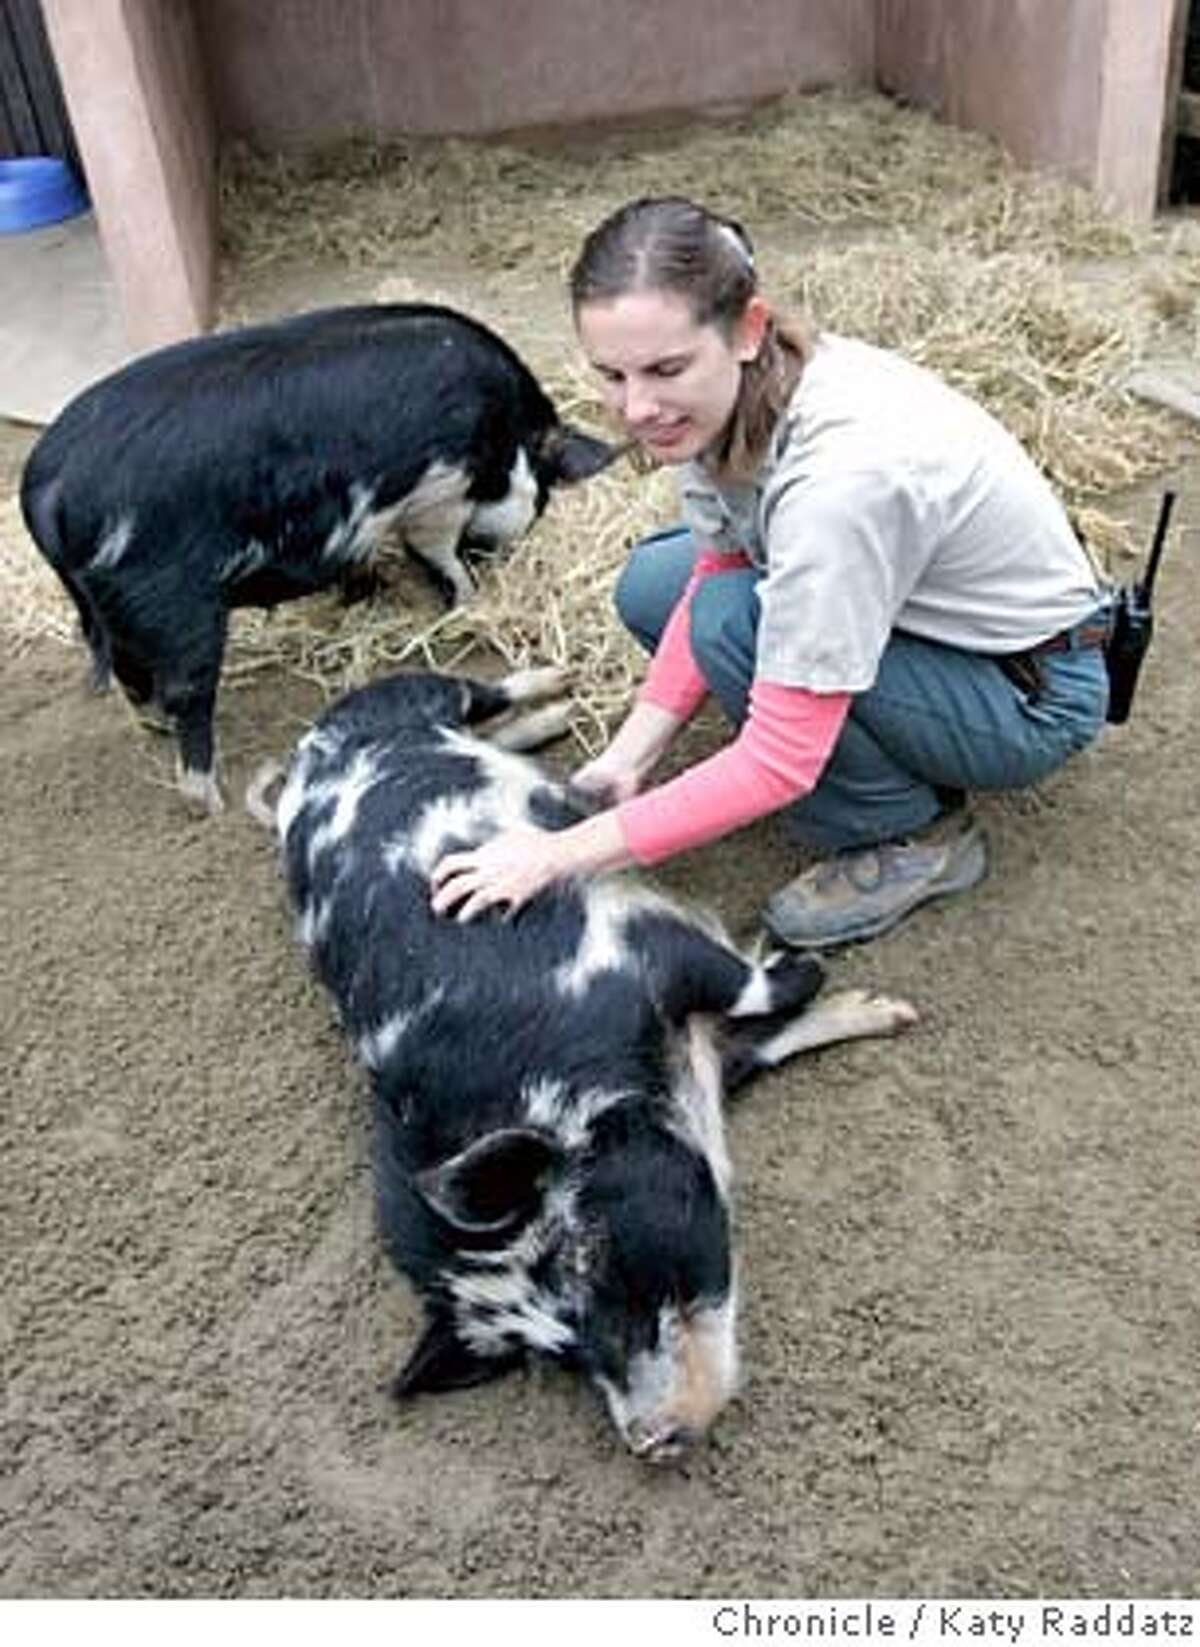 PIGS_010_RAD.jpg SHOWN: Intern Elizabeth Kitazono pets Tiki as he lays down on command. Kai is the pig standing. The kune kune pigs at the Children's Zoo, inside the San Francisco Zoo. They are cute and smart and are being written about in conjunction with the Lunar New Year. Writer is Pat Yollin These pictures were made on Wednesday, Feb. 7, 2007, in San Francisco, CA. (Katy Raddatz/SF Chronicle) **kune kune, Kitazono, Tiki, Kai Mandatory credit for the photographer and the San Francisco Chronicle. No sales; mags out.